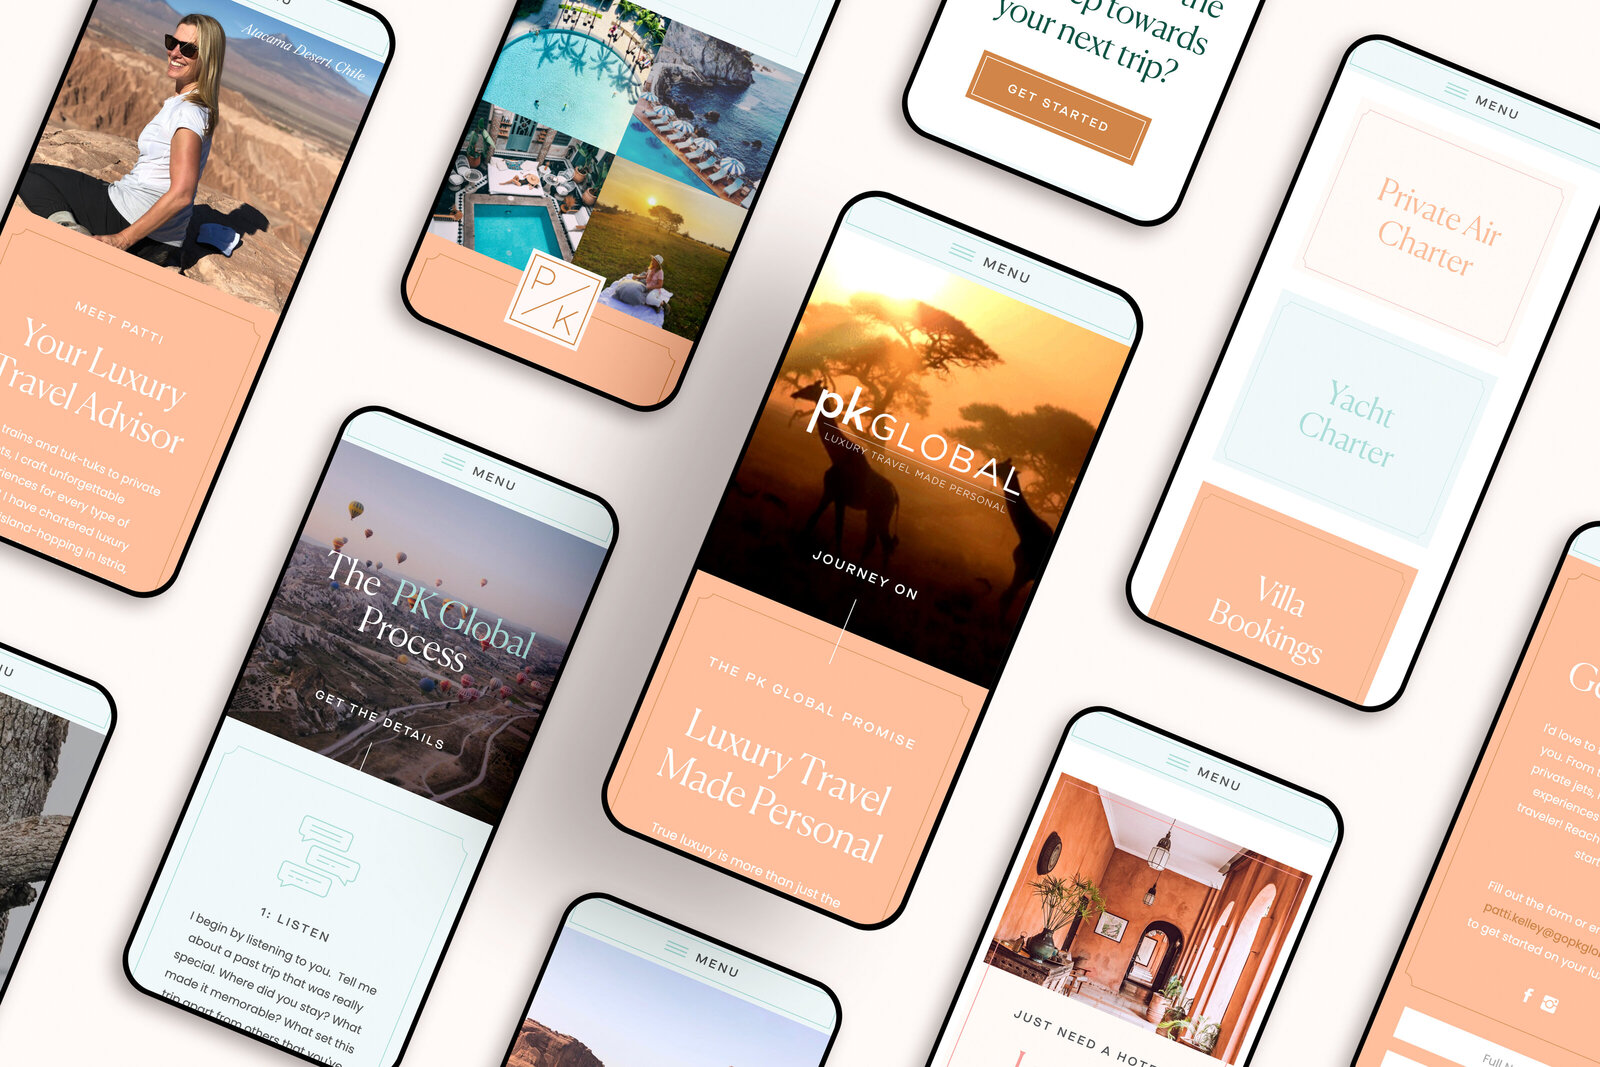 Mobile Mockups - Static Images